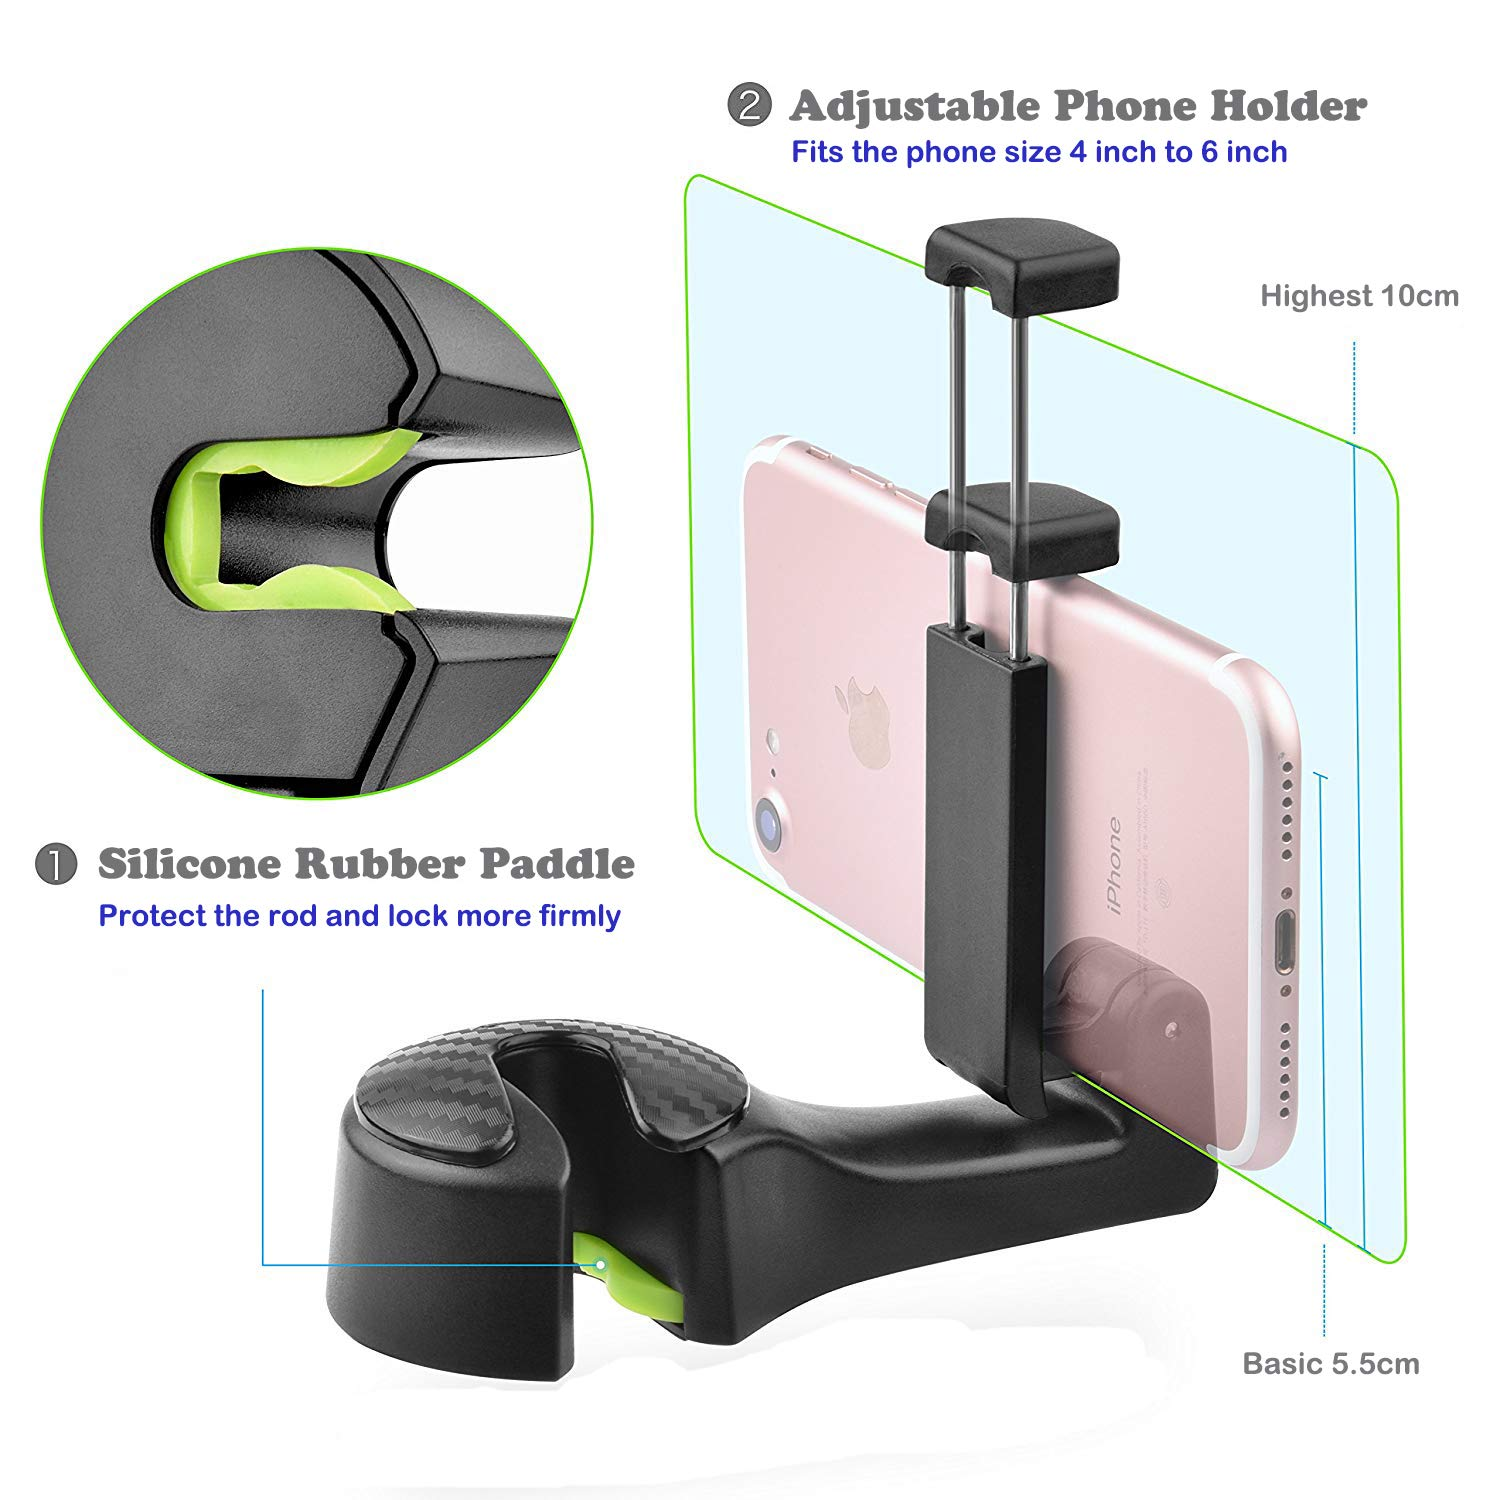 Car Backseat Hooks with Phone Holder,Universal Vehicle Car Headrest Hooks Hanger with Lock and Phone Stand for Holding Phones and Hanging Shopping Bag, Purse, Cloth, Grocery Bags - Pack of 2